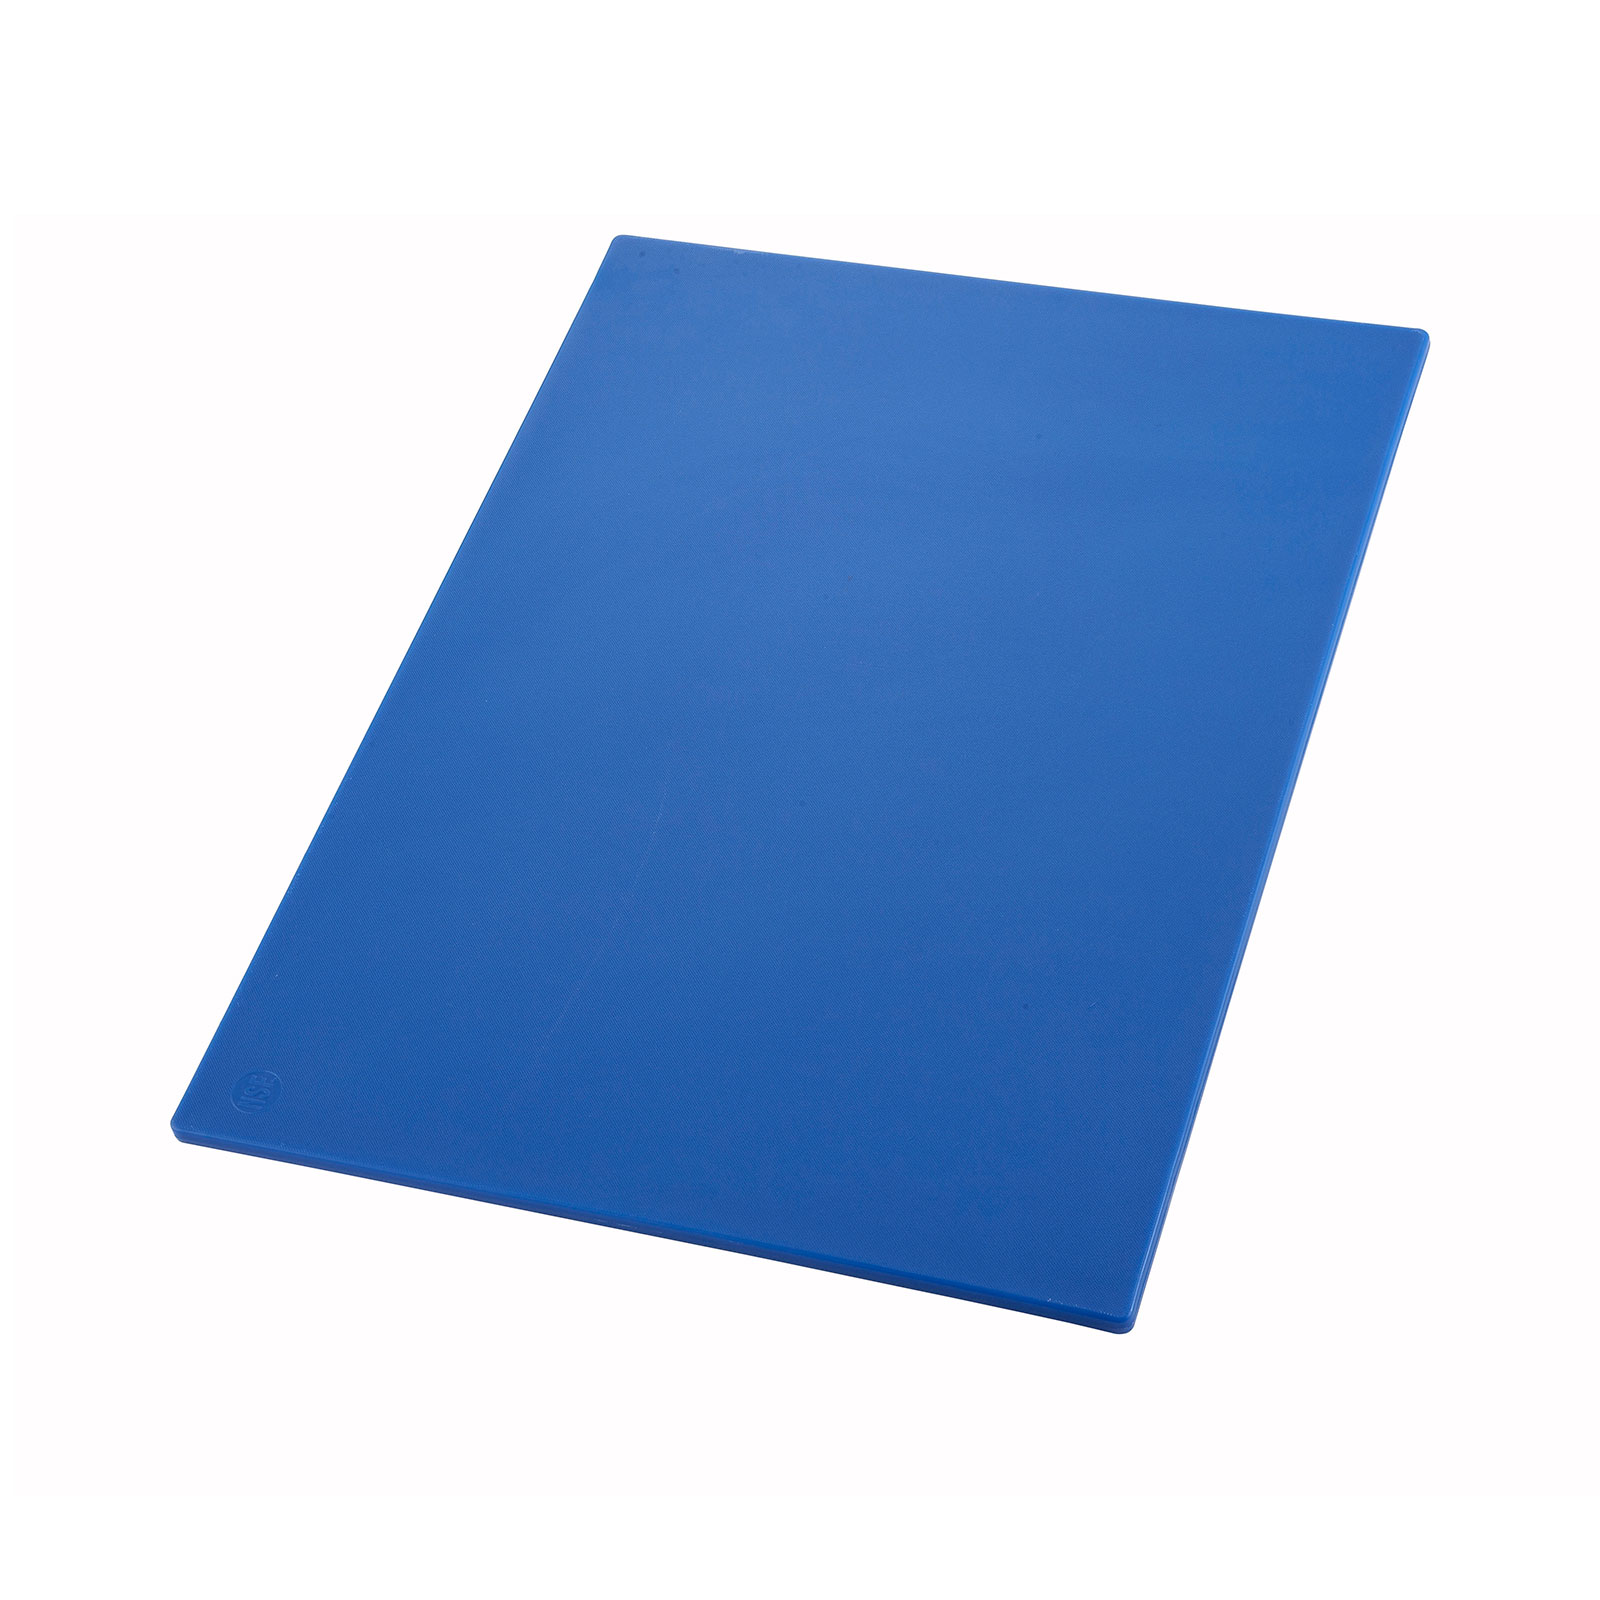 Winco CBBU-1218 cutting board, plastic